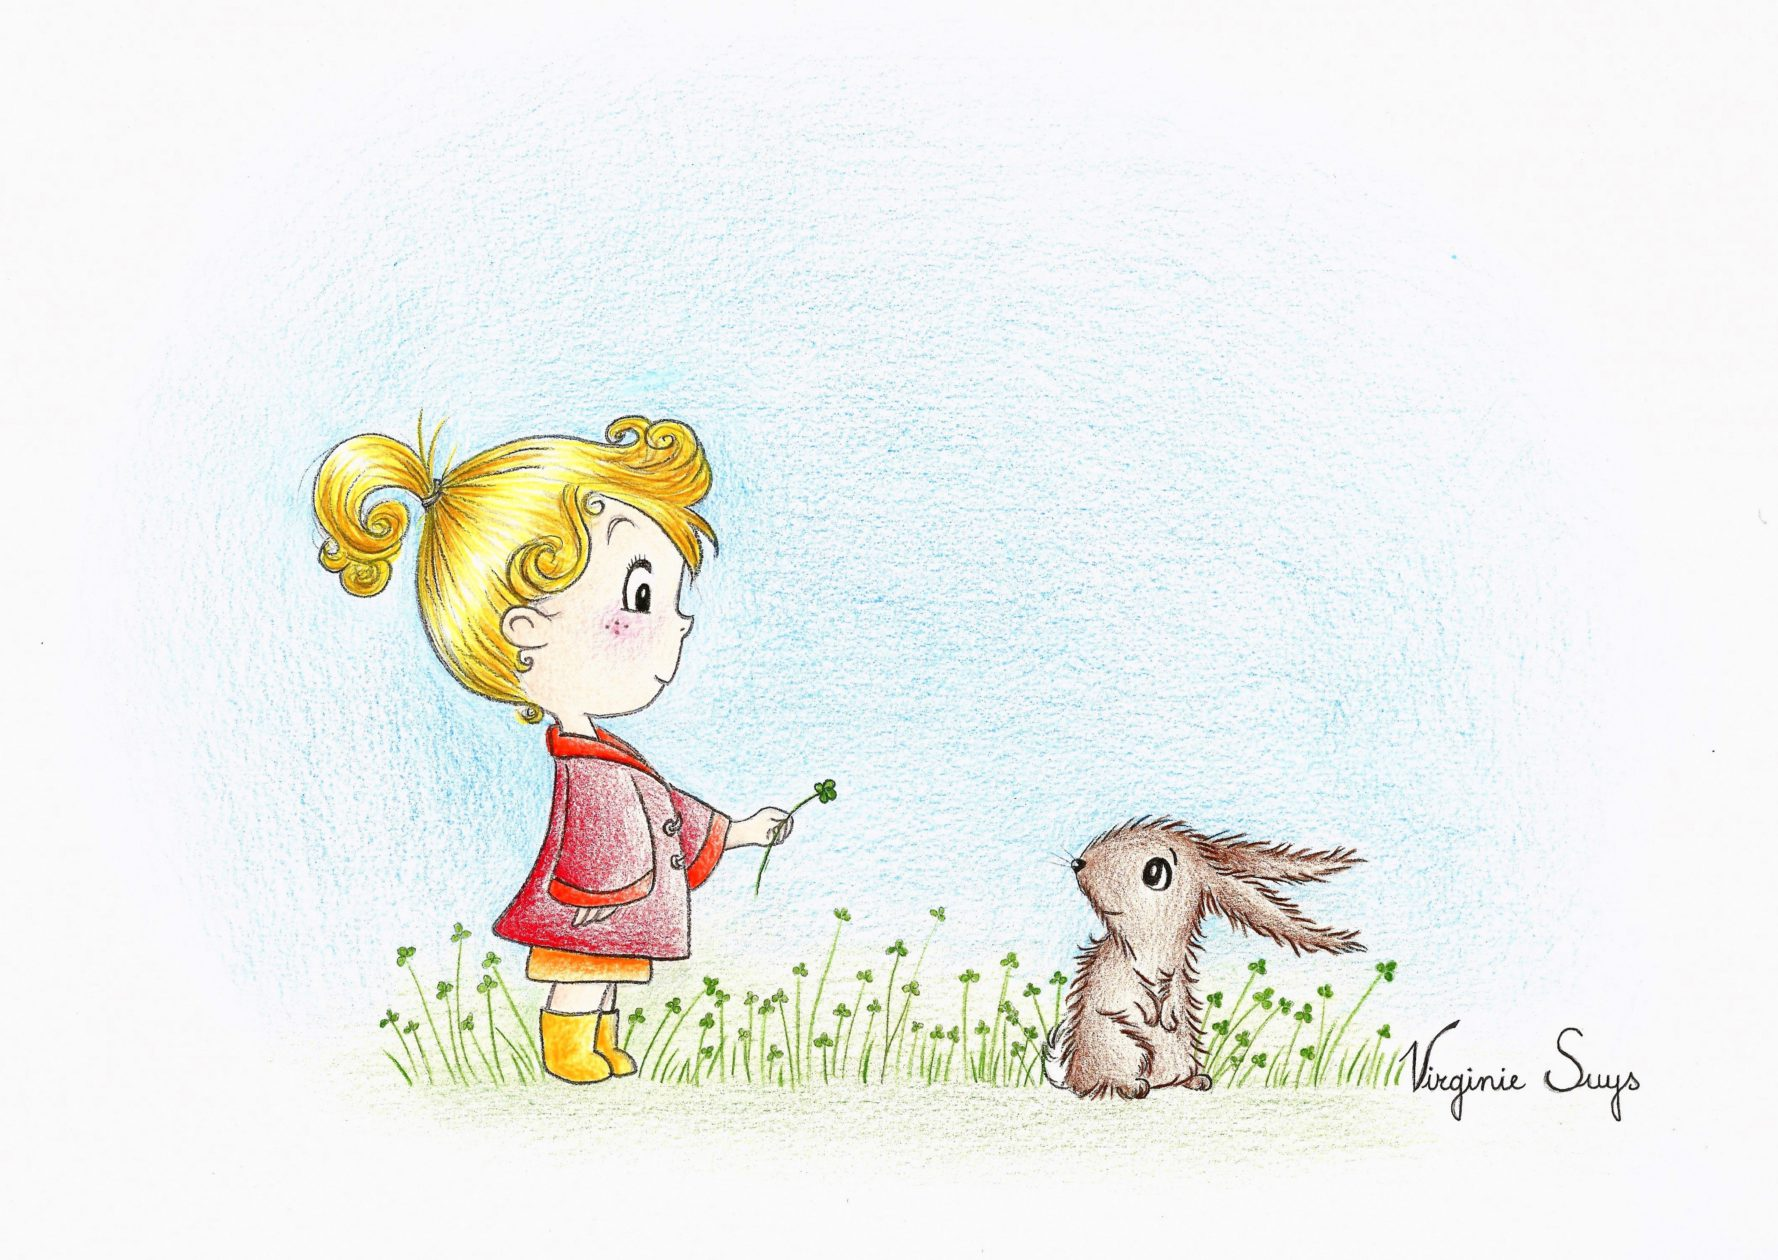 Virginie Suys Girl with rabbit in red illustration